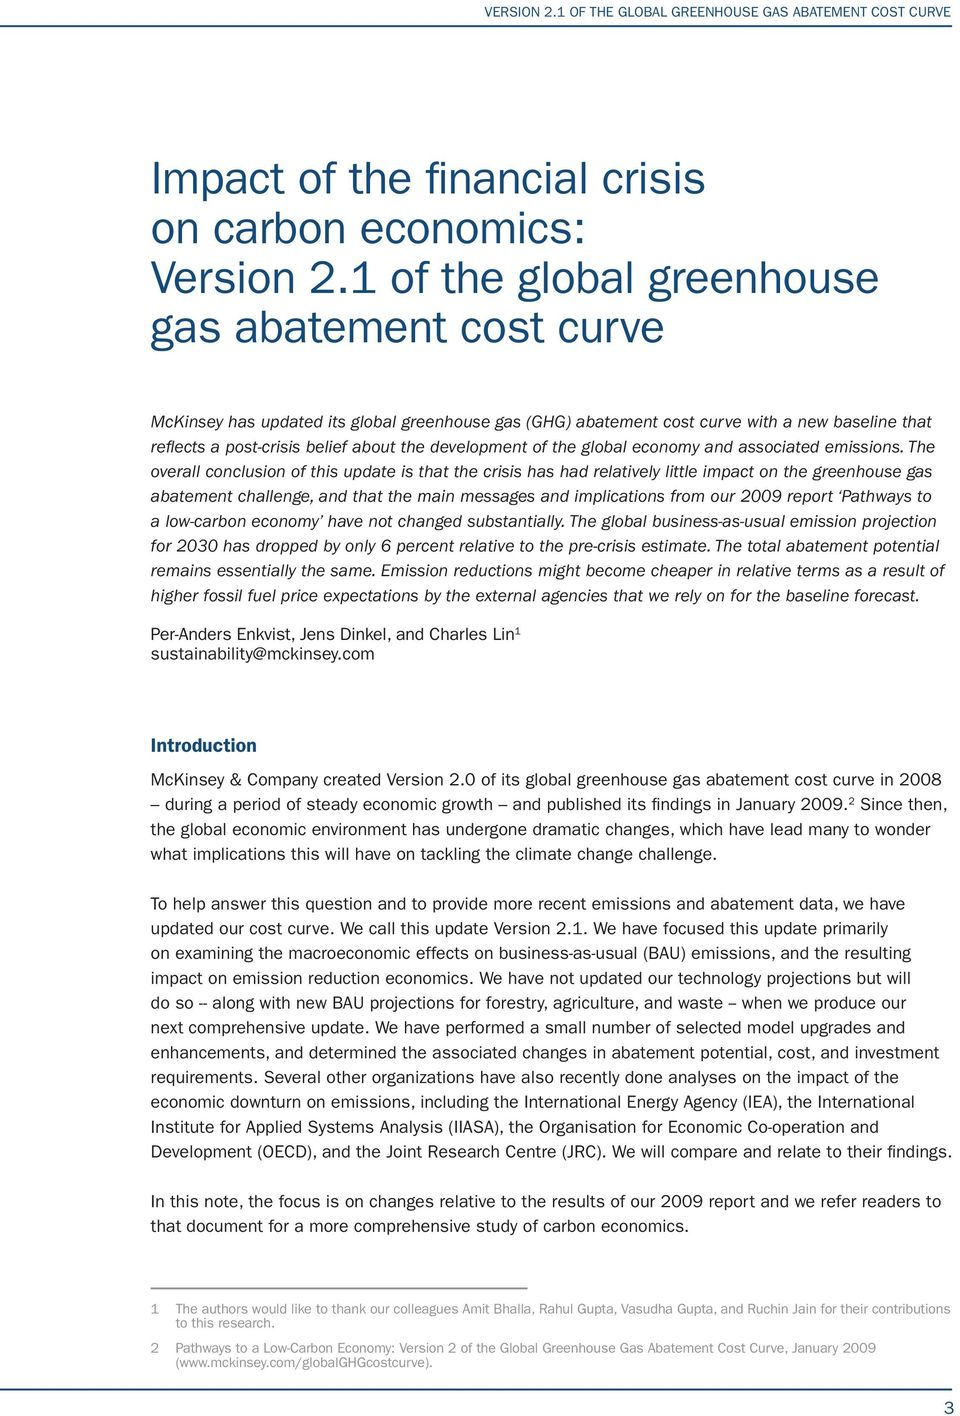 development of the global economy and associated emissions.